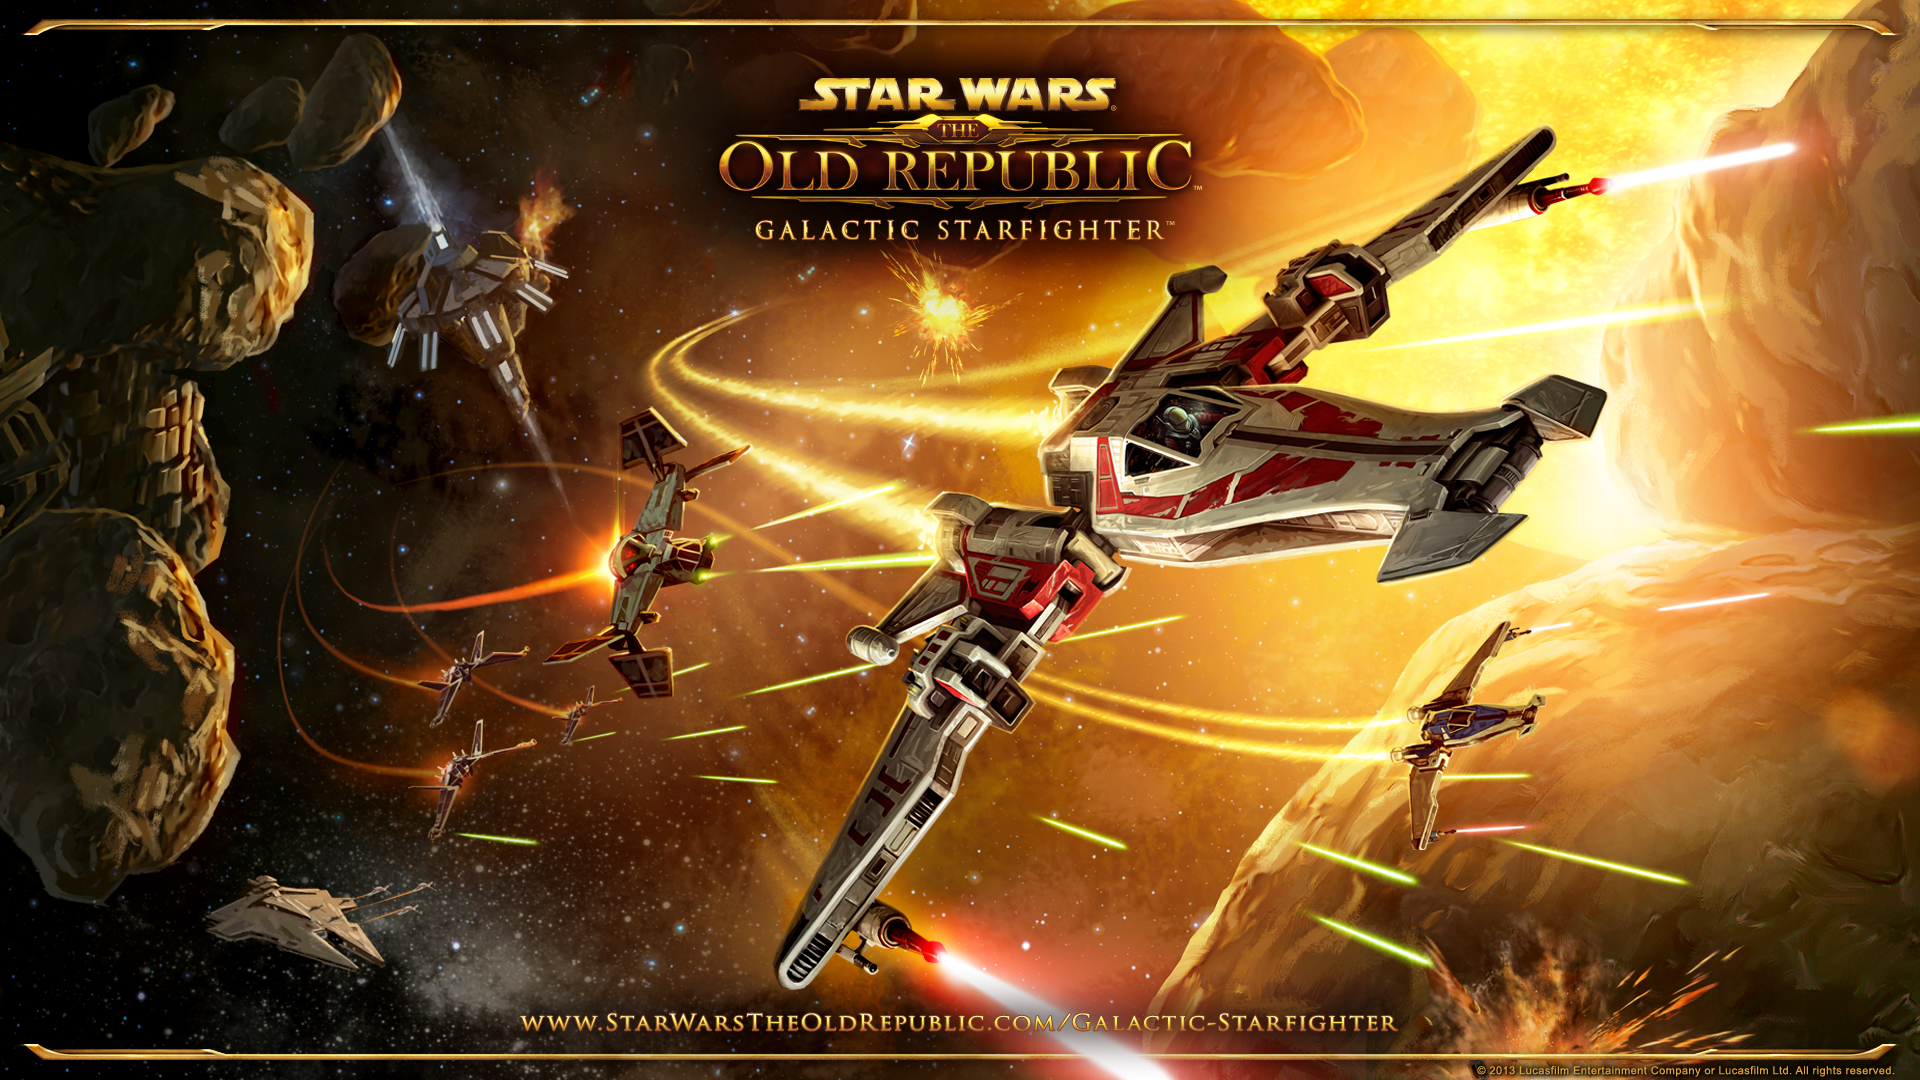 Star Wars: The Old Republic Star Wars: The Old Republic im Test